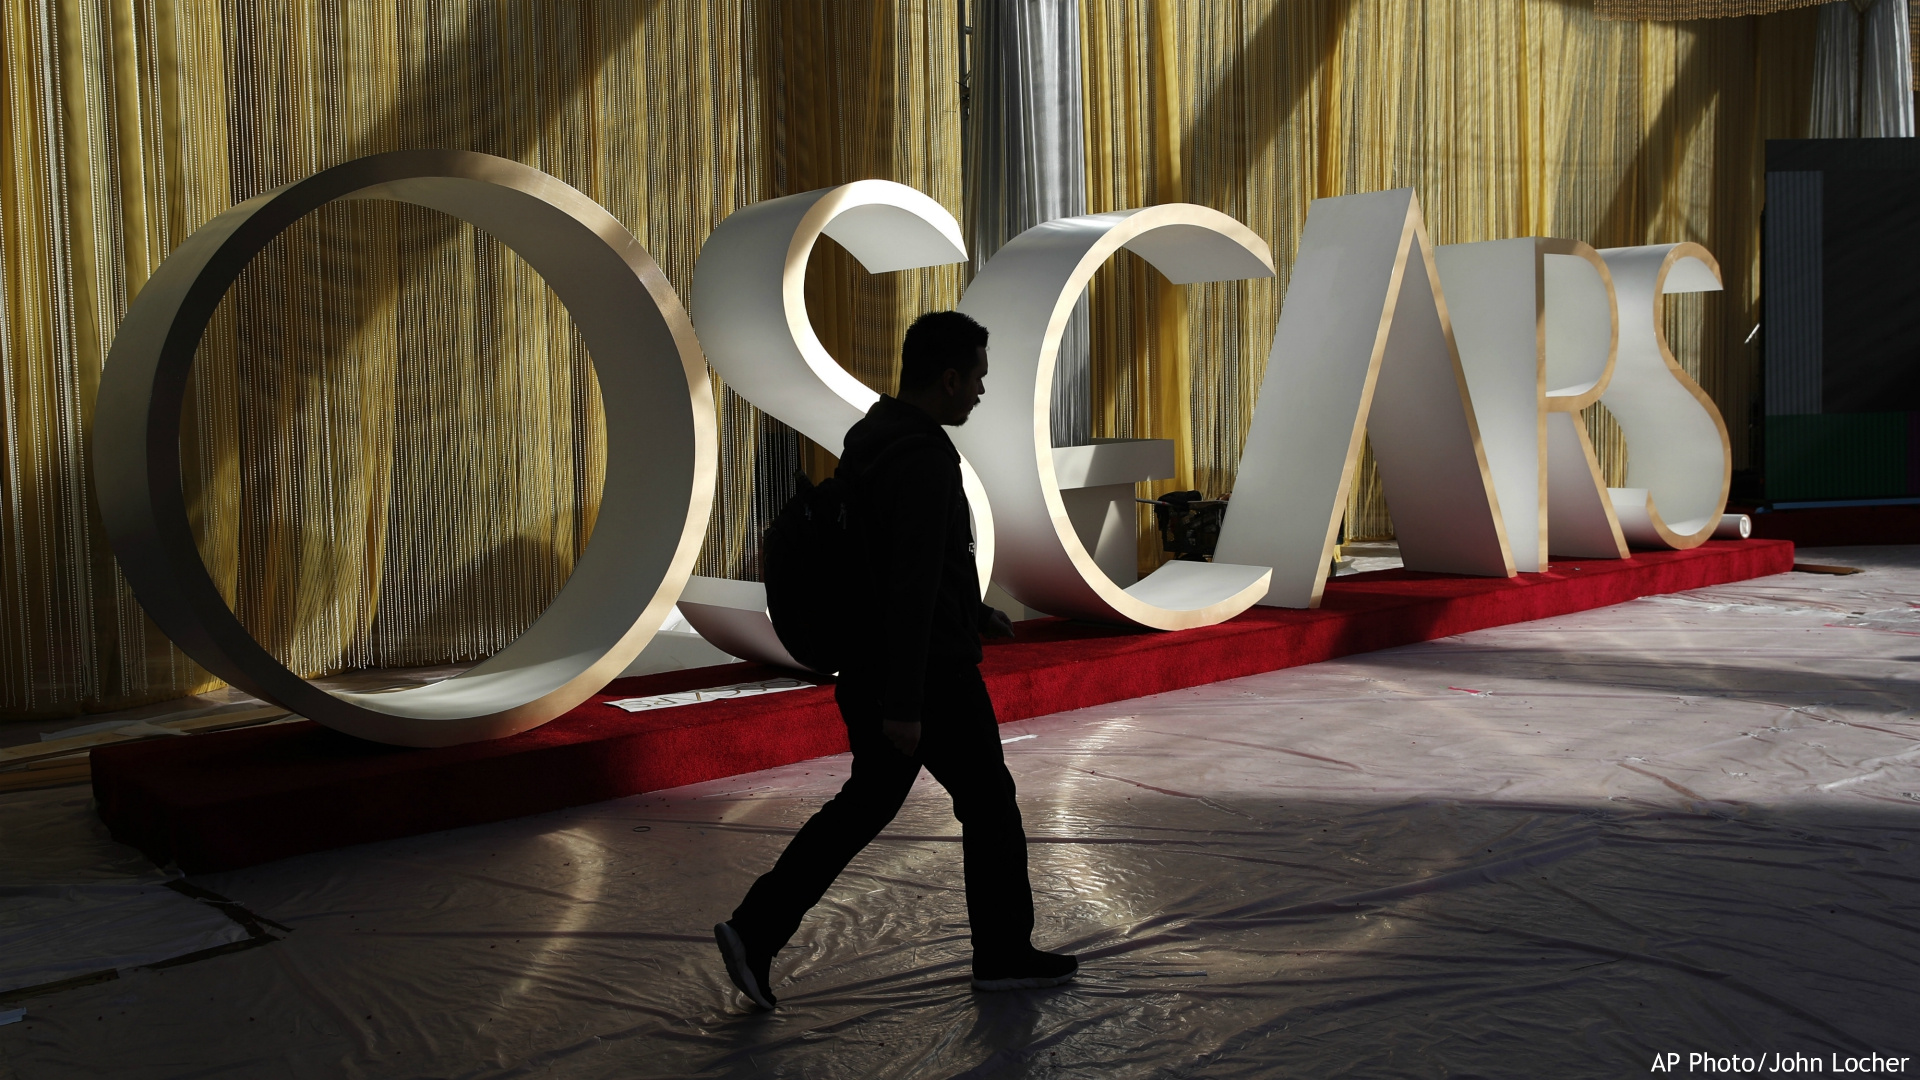 A worker walks along the red carpet during preparations for Sunday's red carpet arrivals at the 92nd Academy Awards at the Dolby Theatre, Friday, Feb. 7, 2020, in Los Angeles. (AP Photo/John Locher)